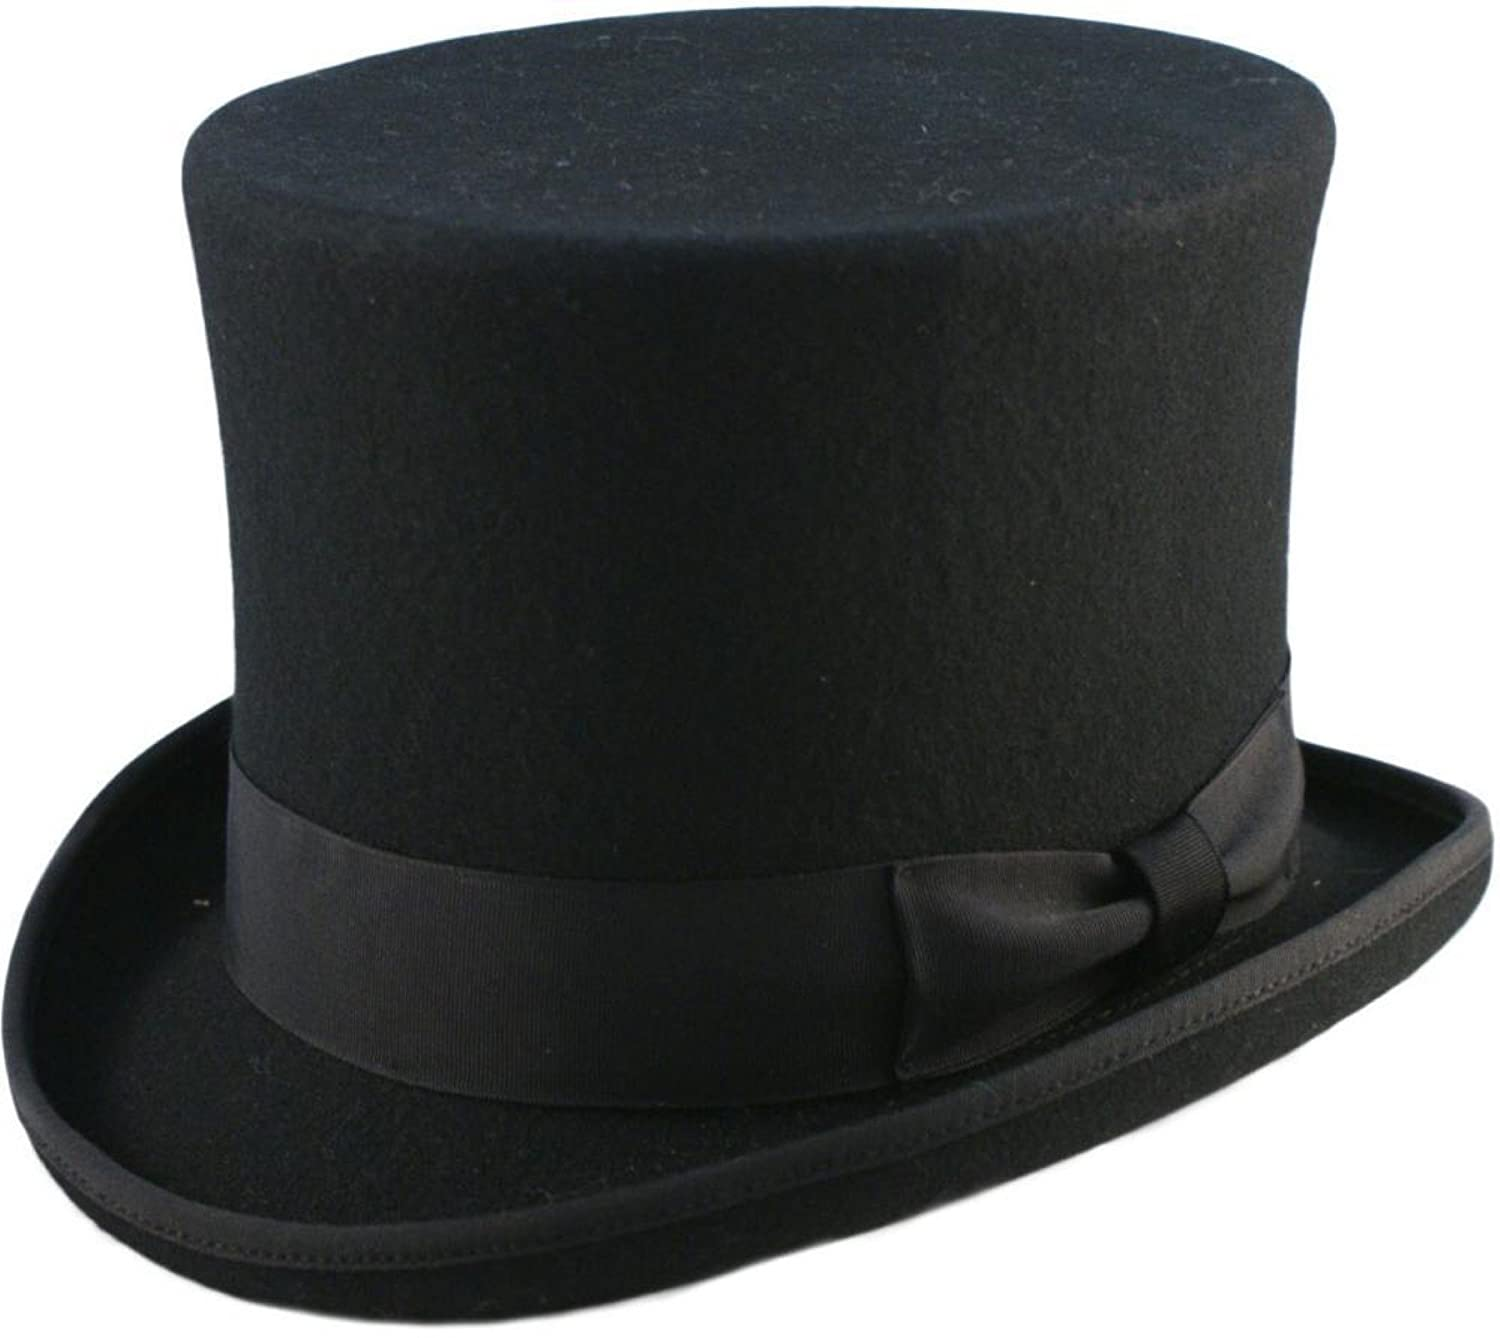 High Quality 6 High Hand Made 100% Wool Satin Lined Top Hat Small to XXL